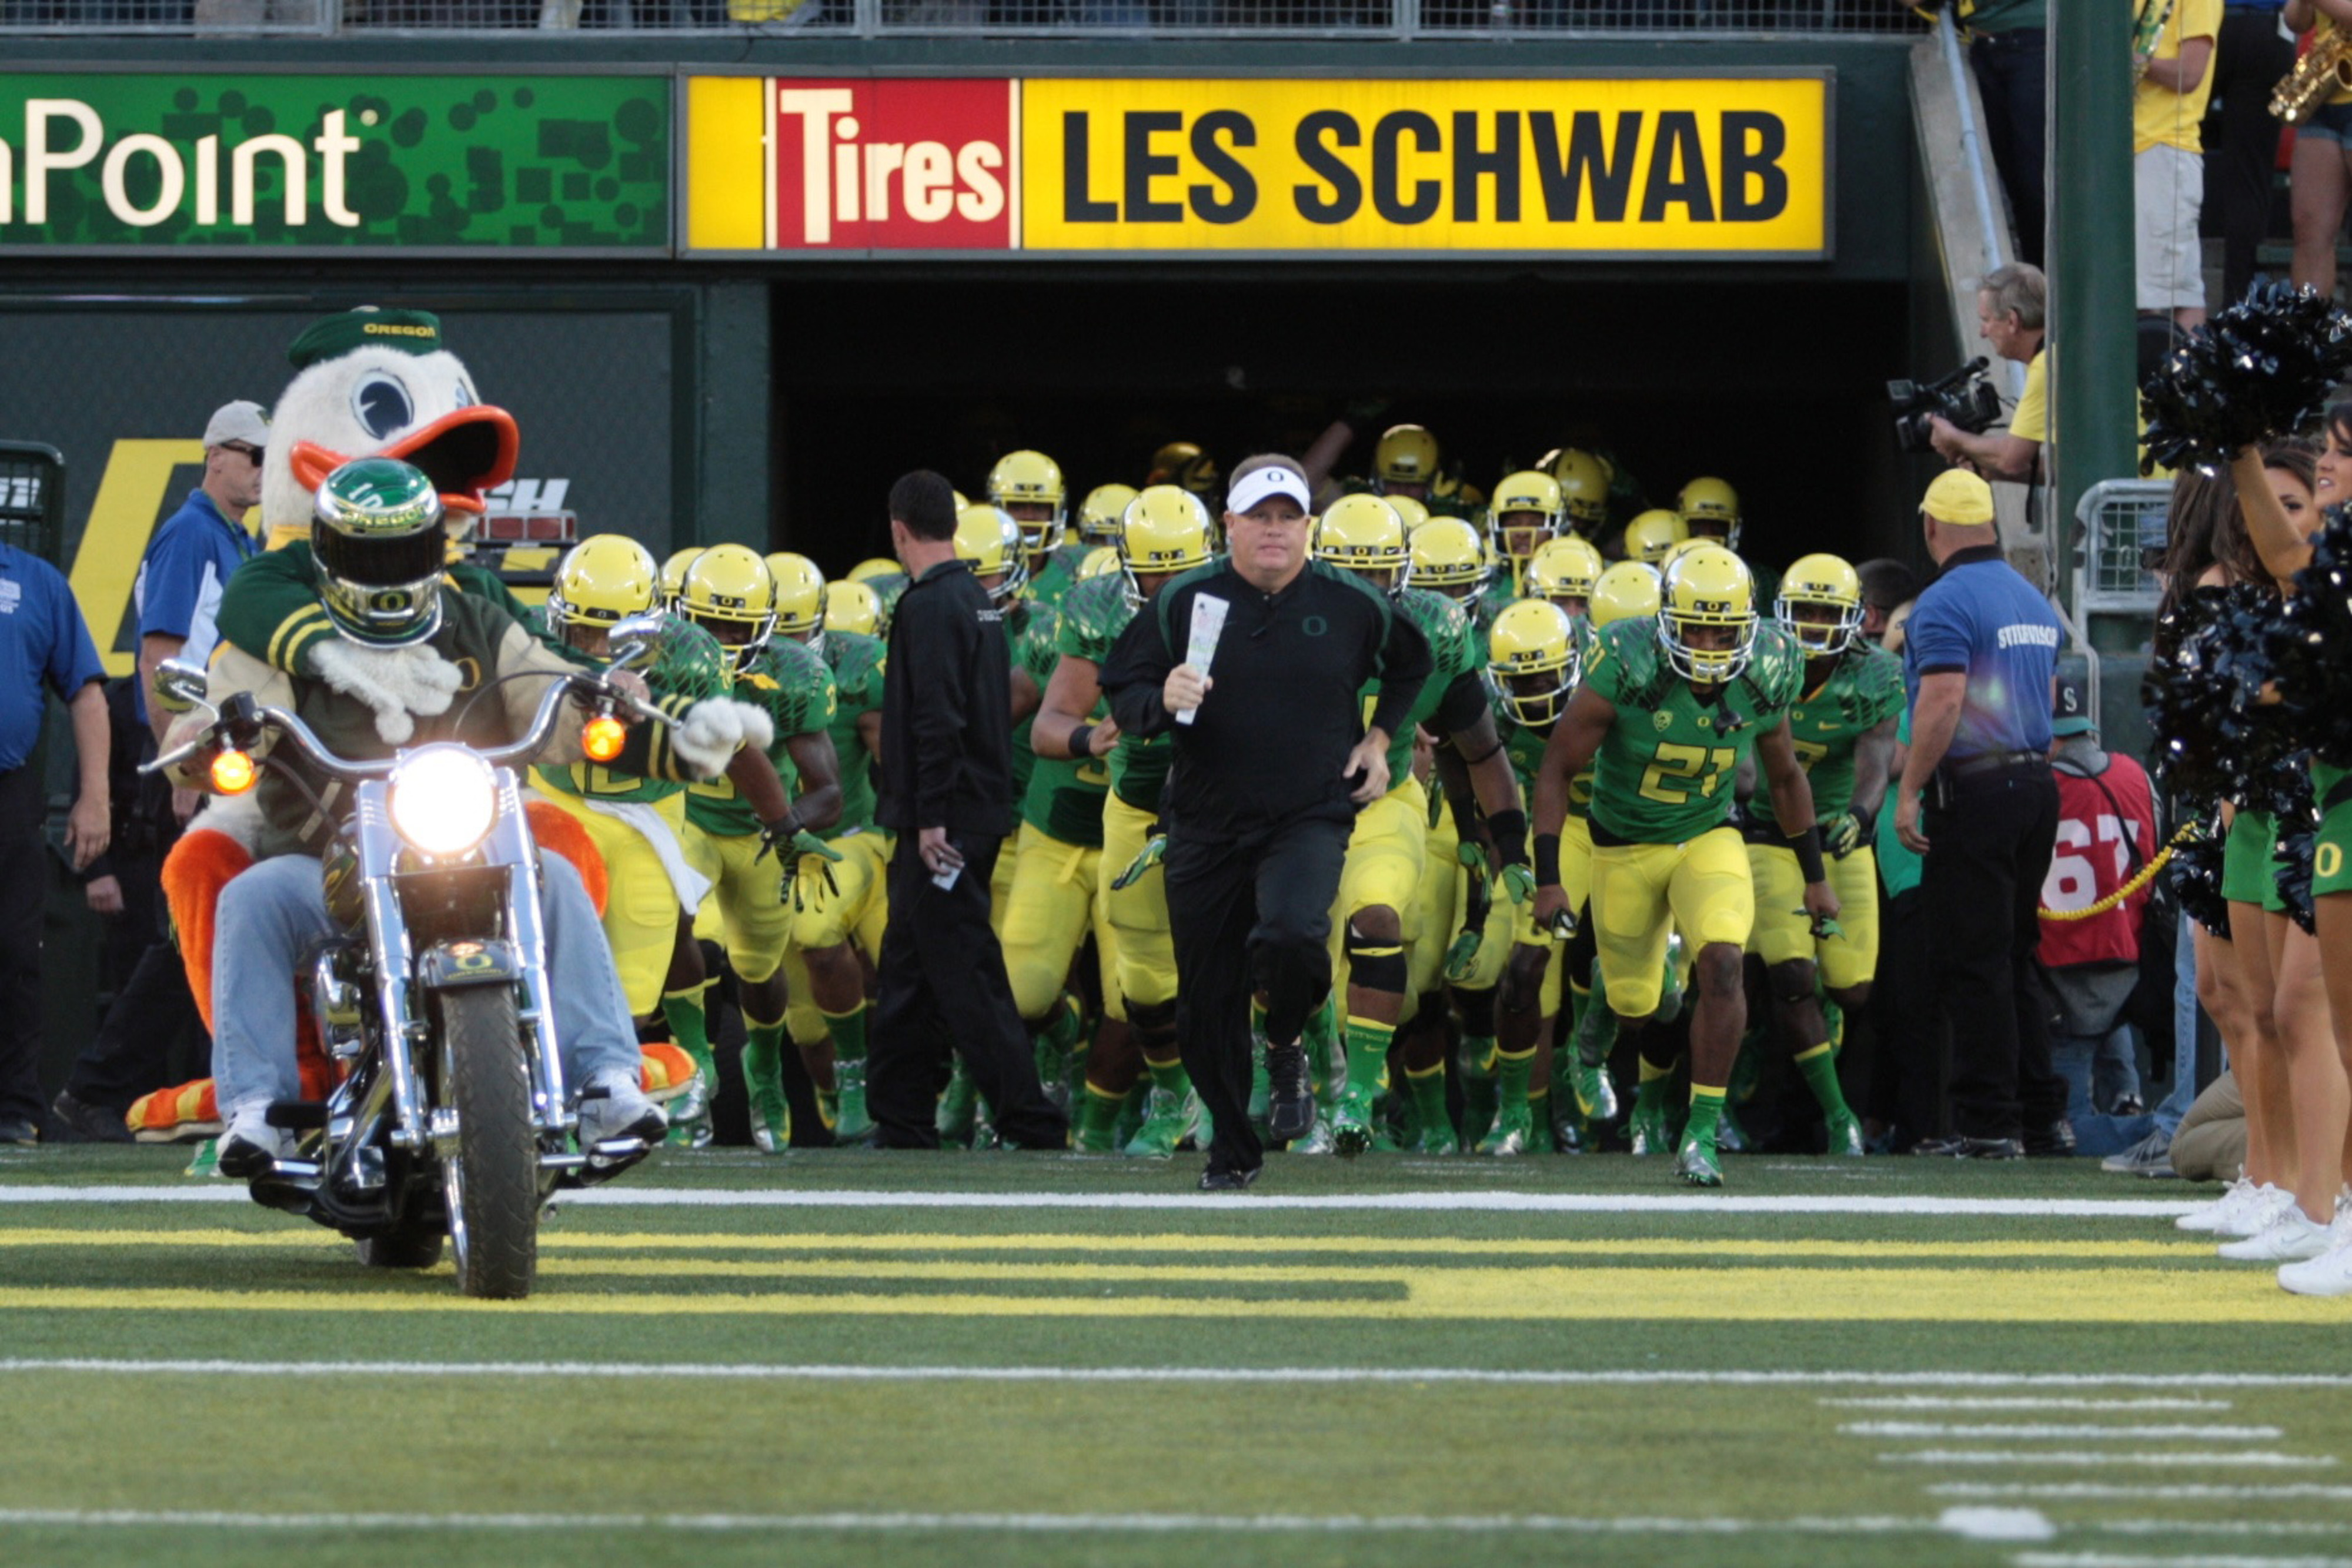 The Ducks started and ended the 2012 season ranked in the top 5